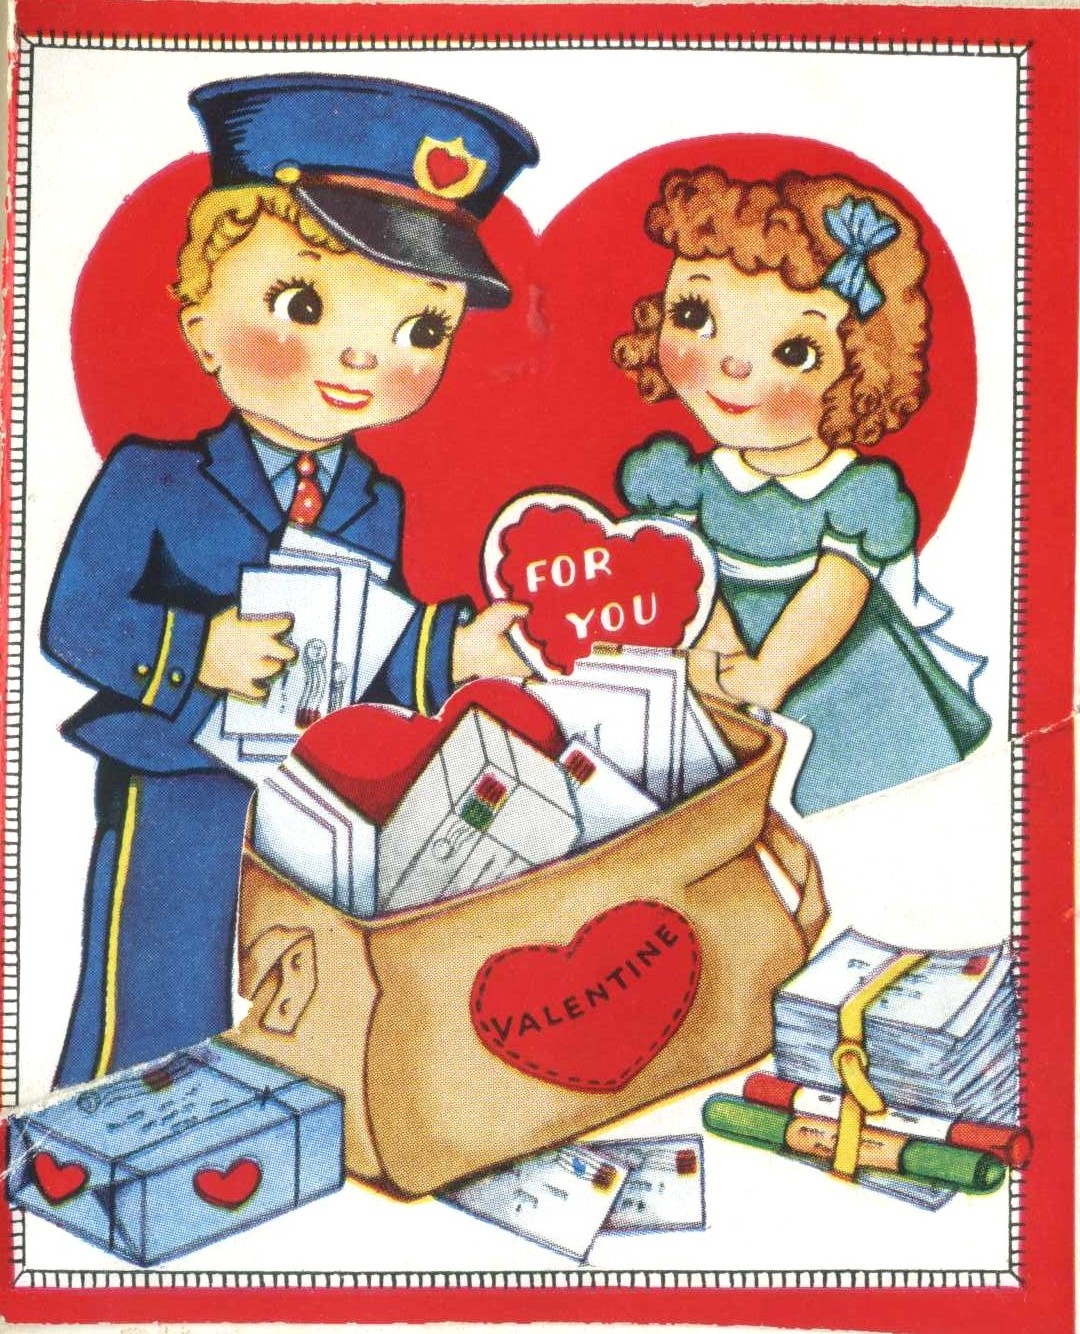 1940s Valentine saved in my baby book.